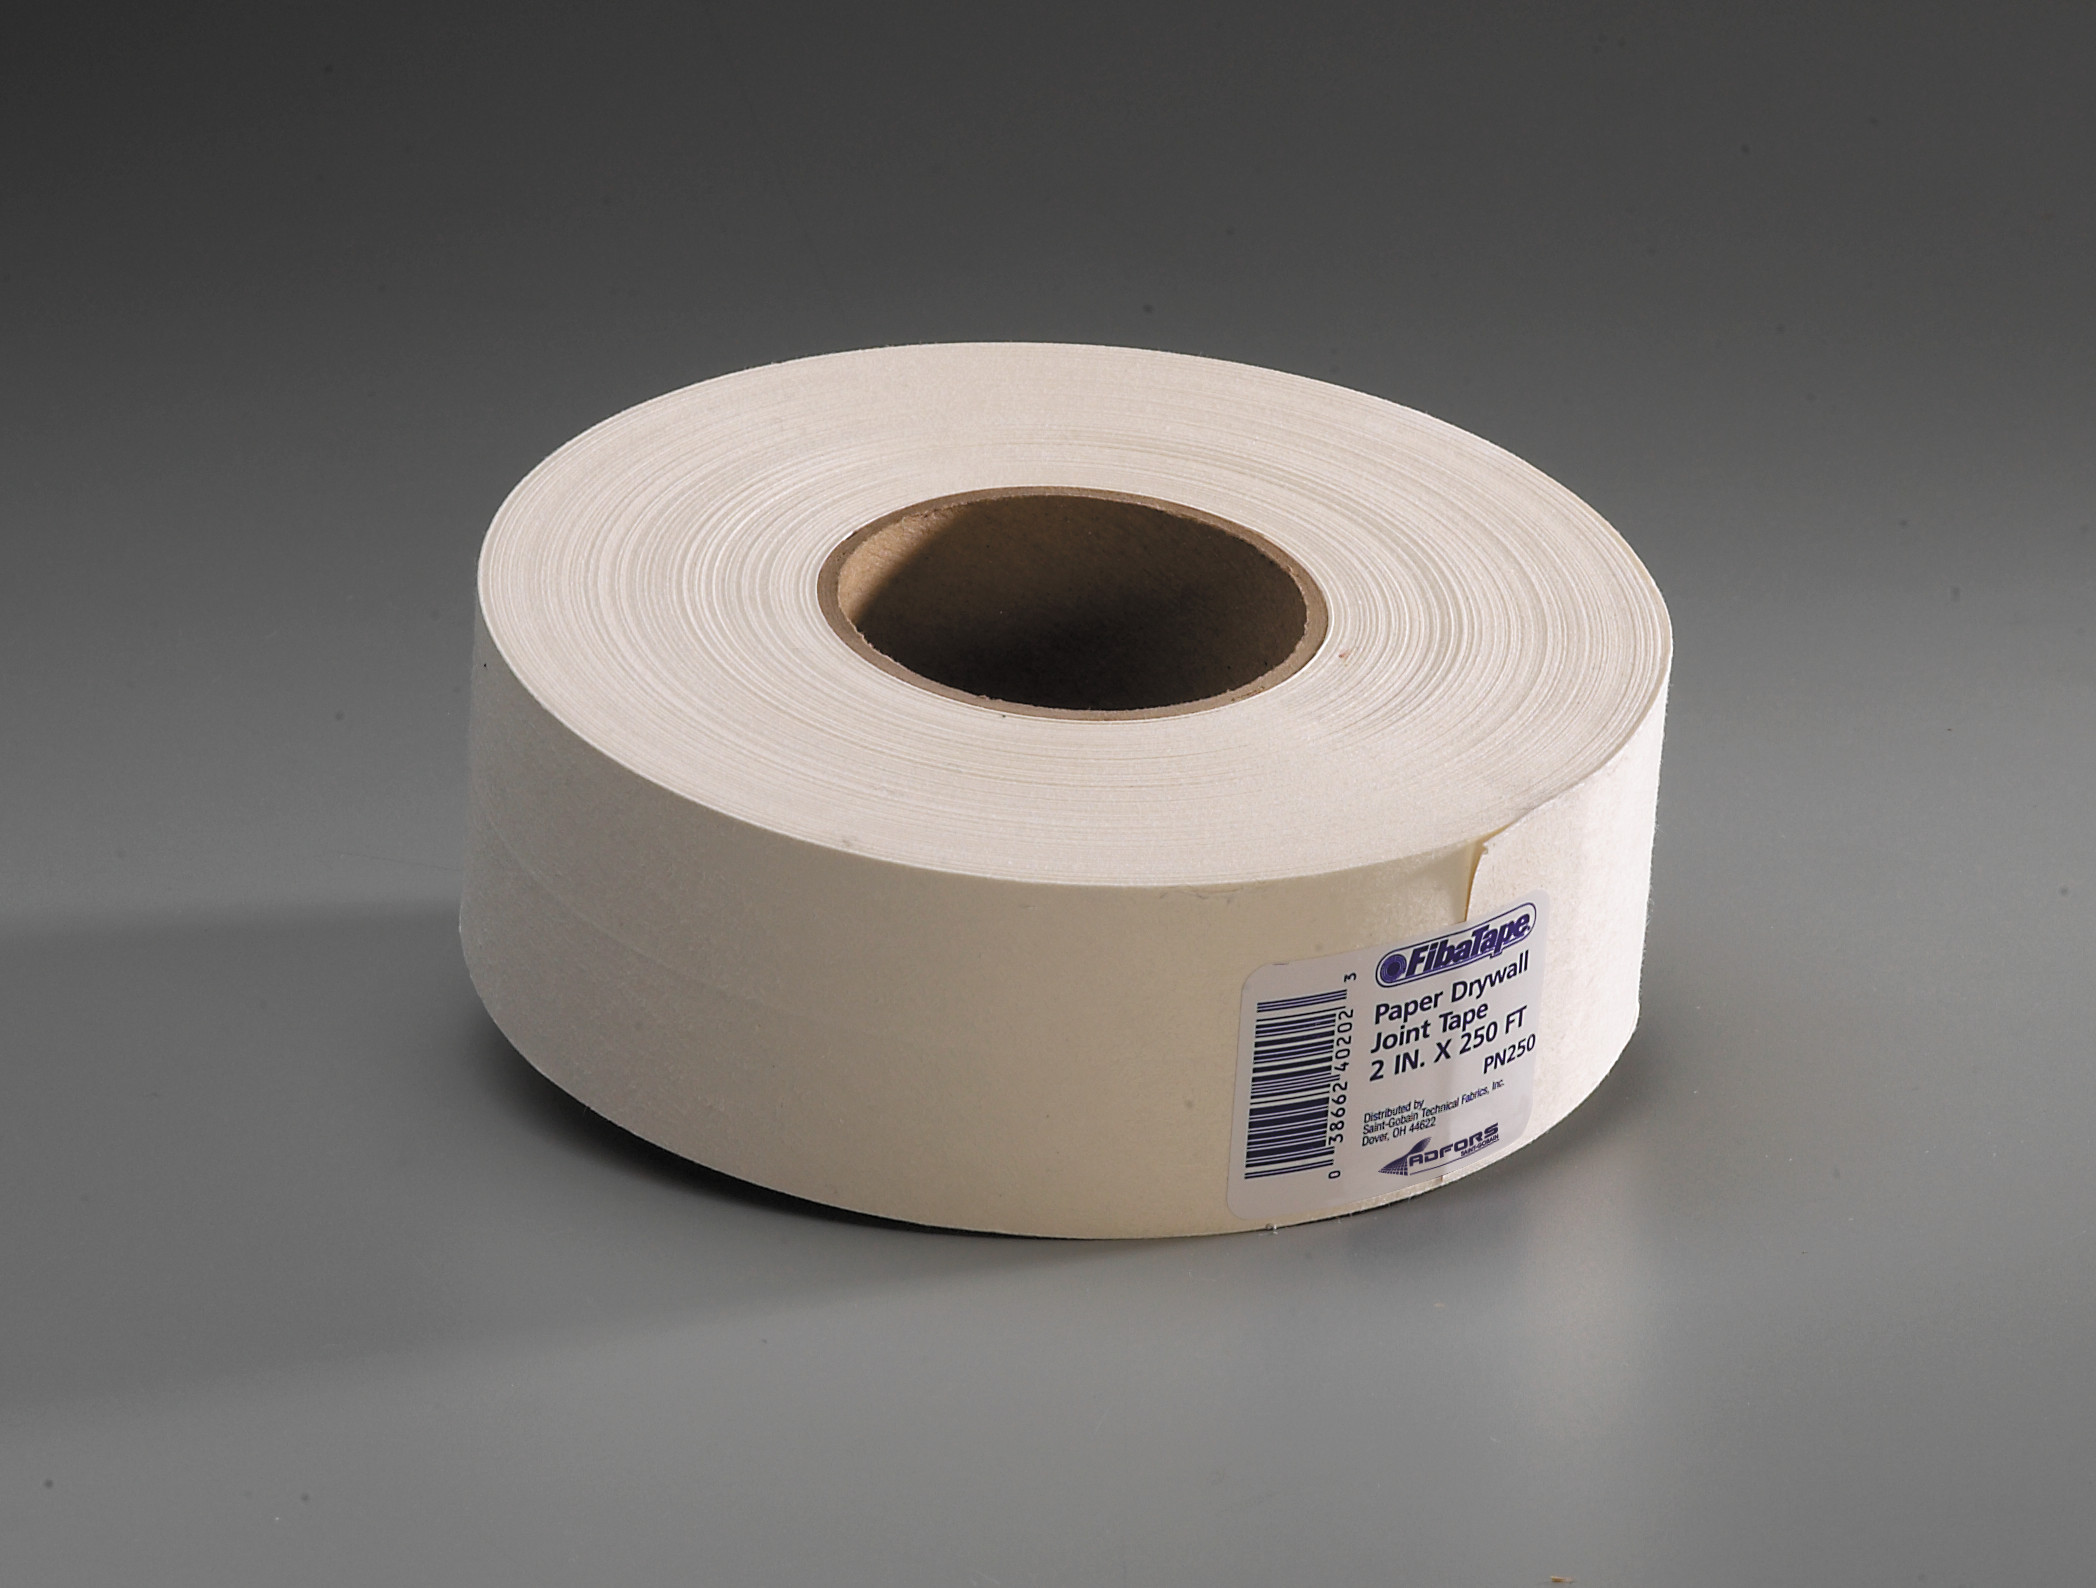 Drywall Paper Tape Saint Gobain Fdw6618 U Permaglas Mesh Paper Joint Tape 250 Foot